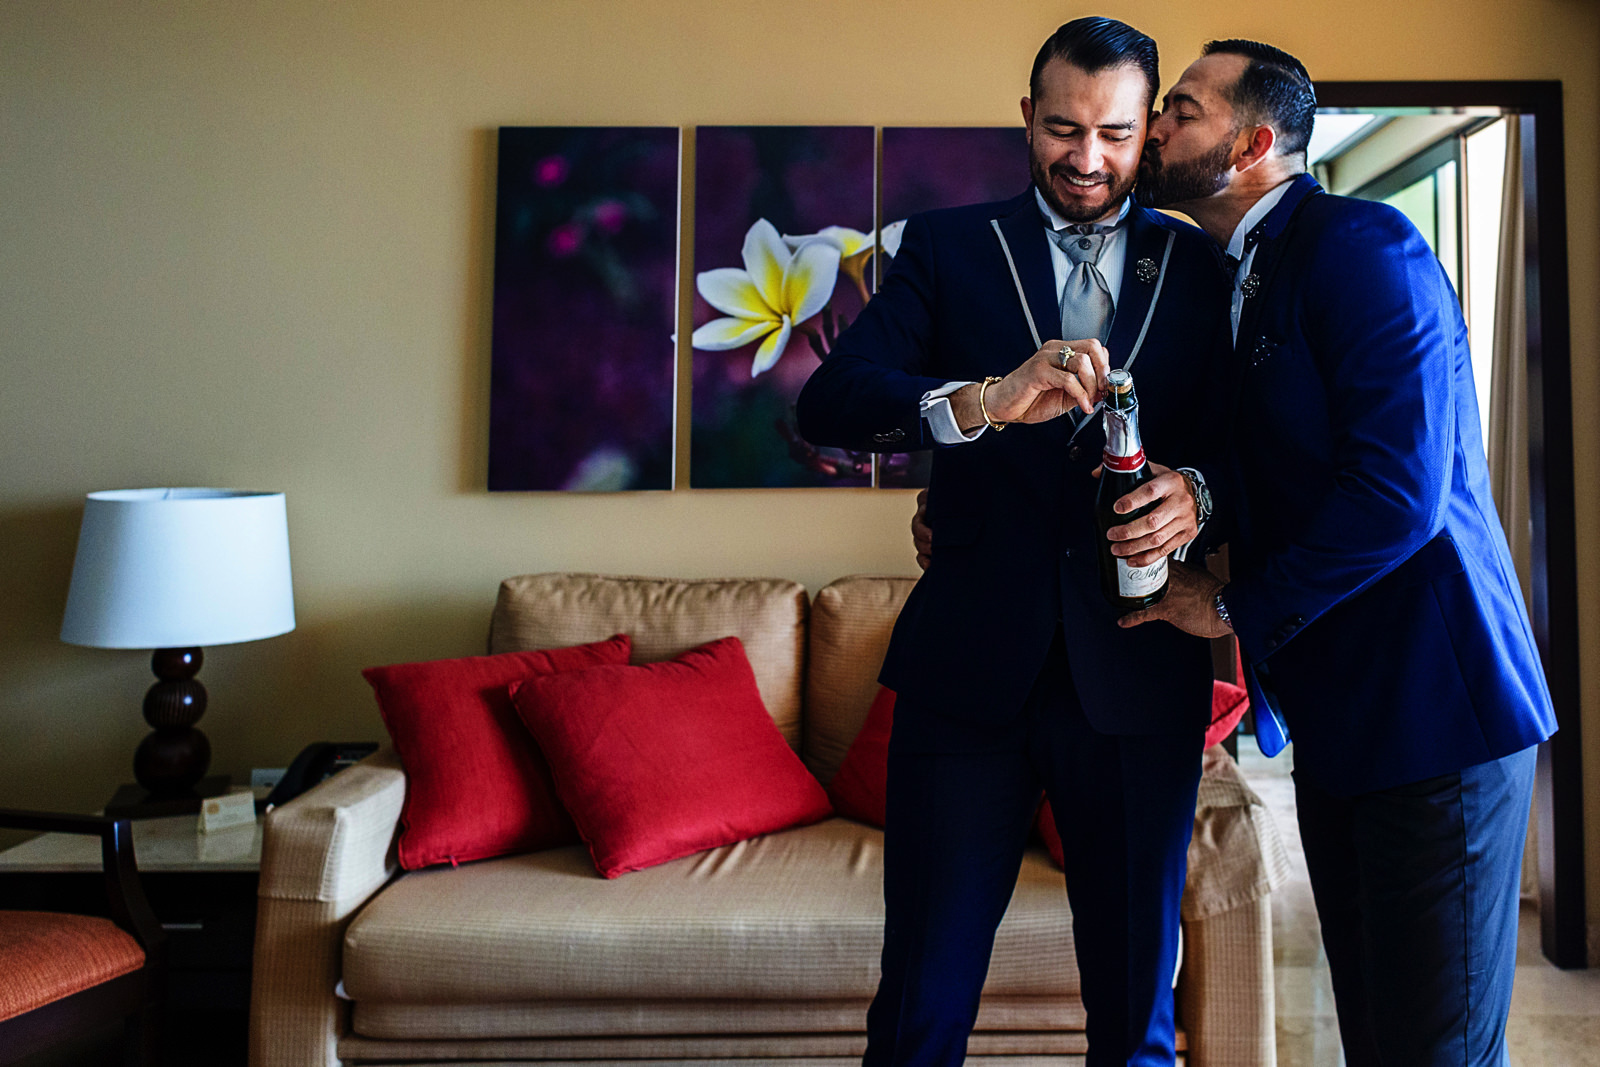 Gay couple opening a bottle of champagne all dressed up on tuxedos before their wedding ceremony.